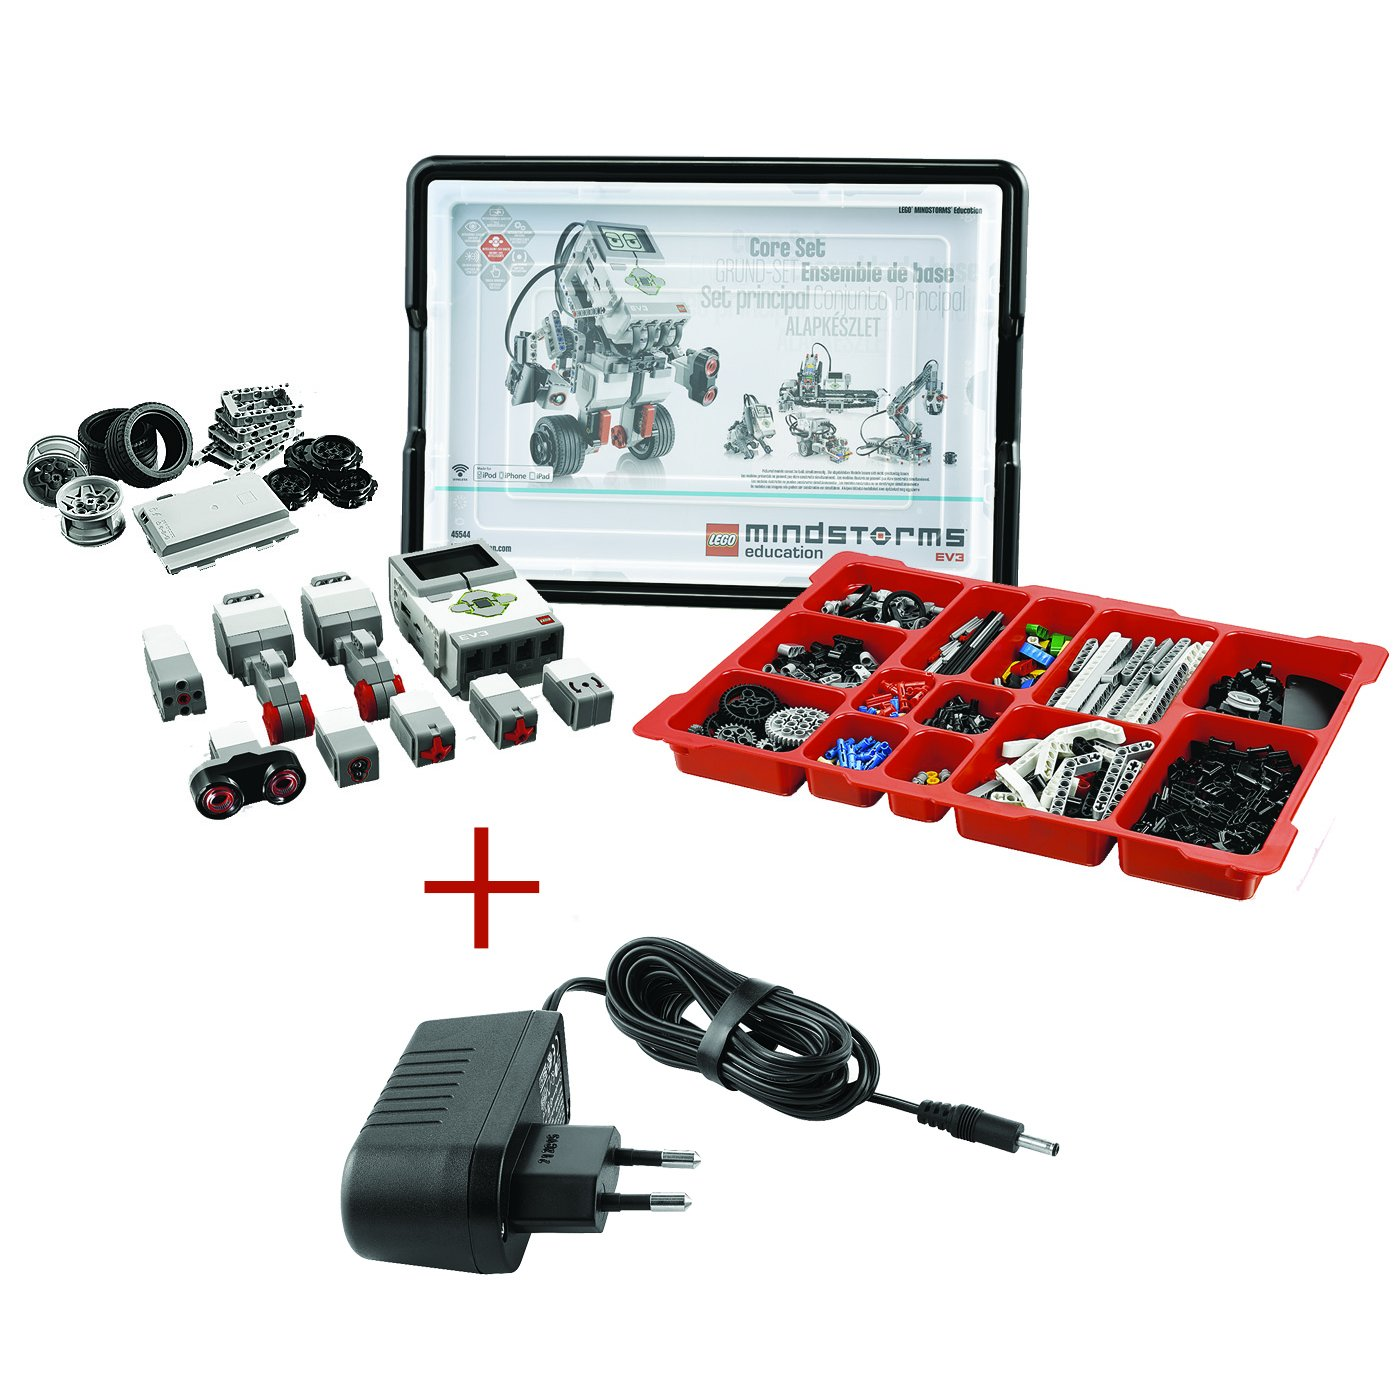 New LEGO Mindstorms EV3 Lithium Ion Rechargeable DC Battery 45501 for 31313 Set